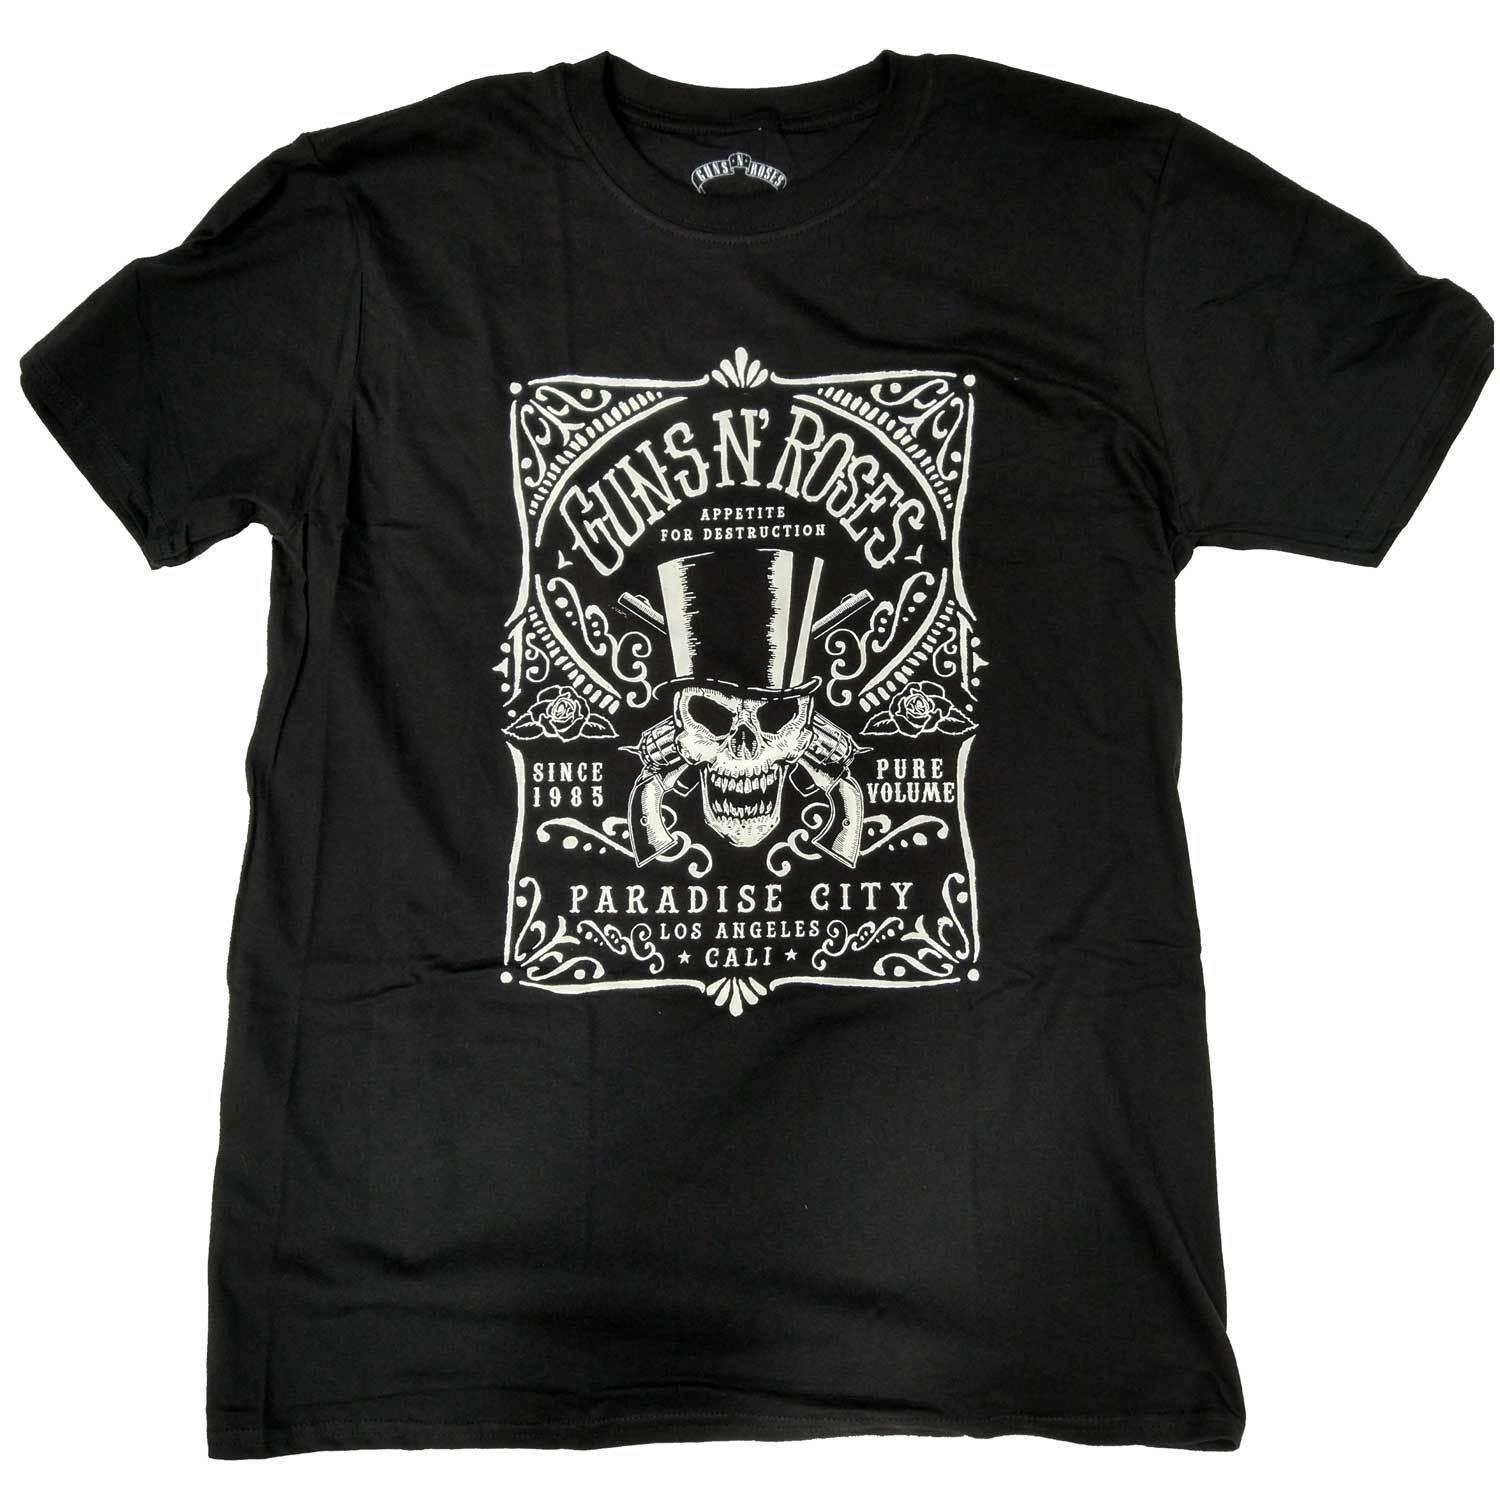 Guns 'N Roses T Shirt - Bourbon Label Men Women Unisex Fashion tshirt Free Shipping Funny Cool Top Tee Black